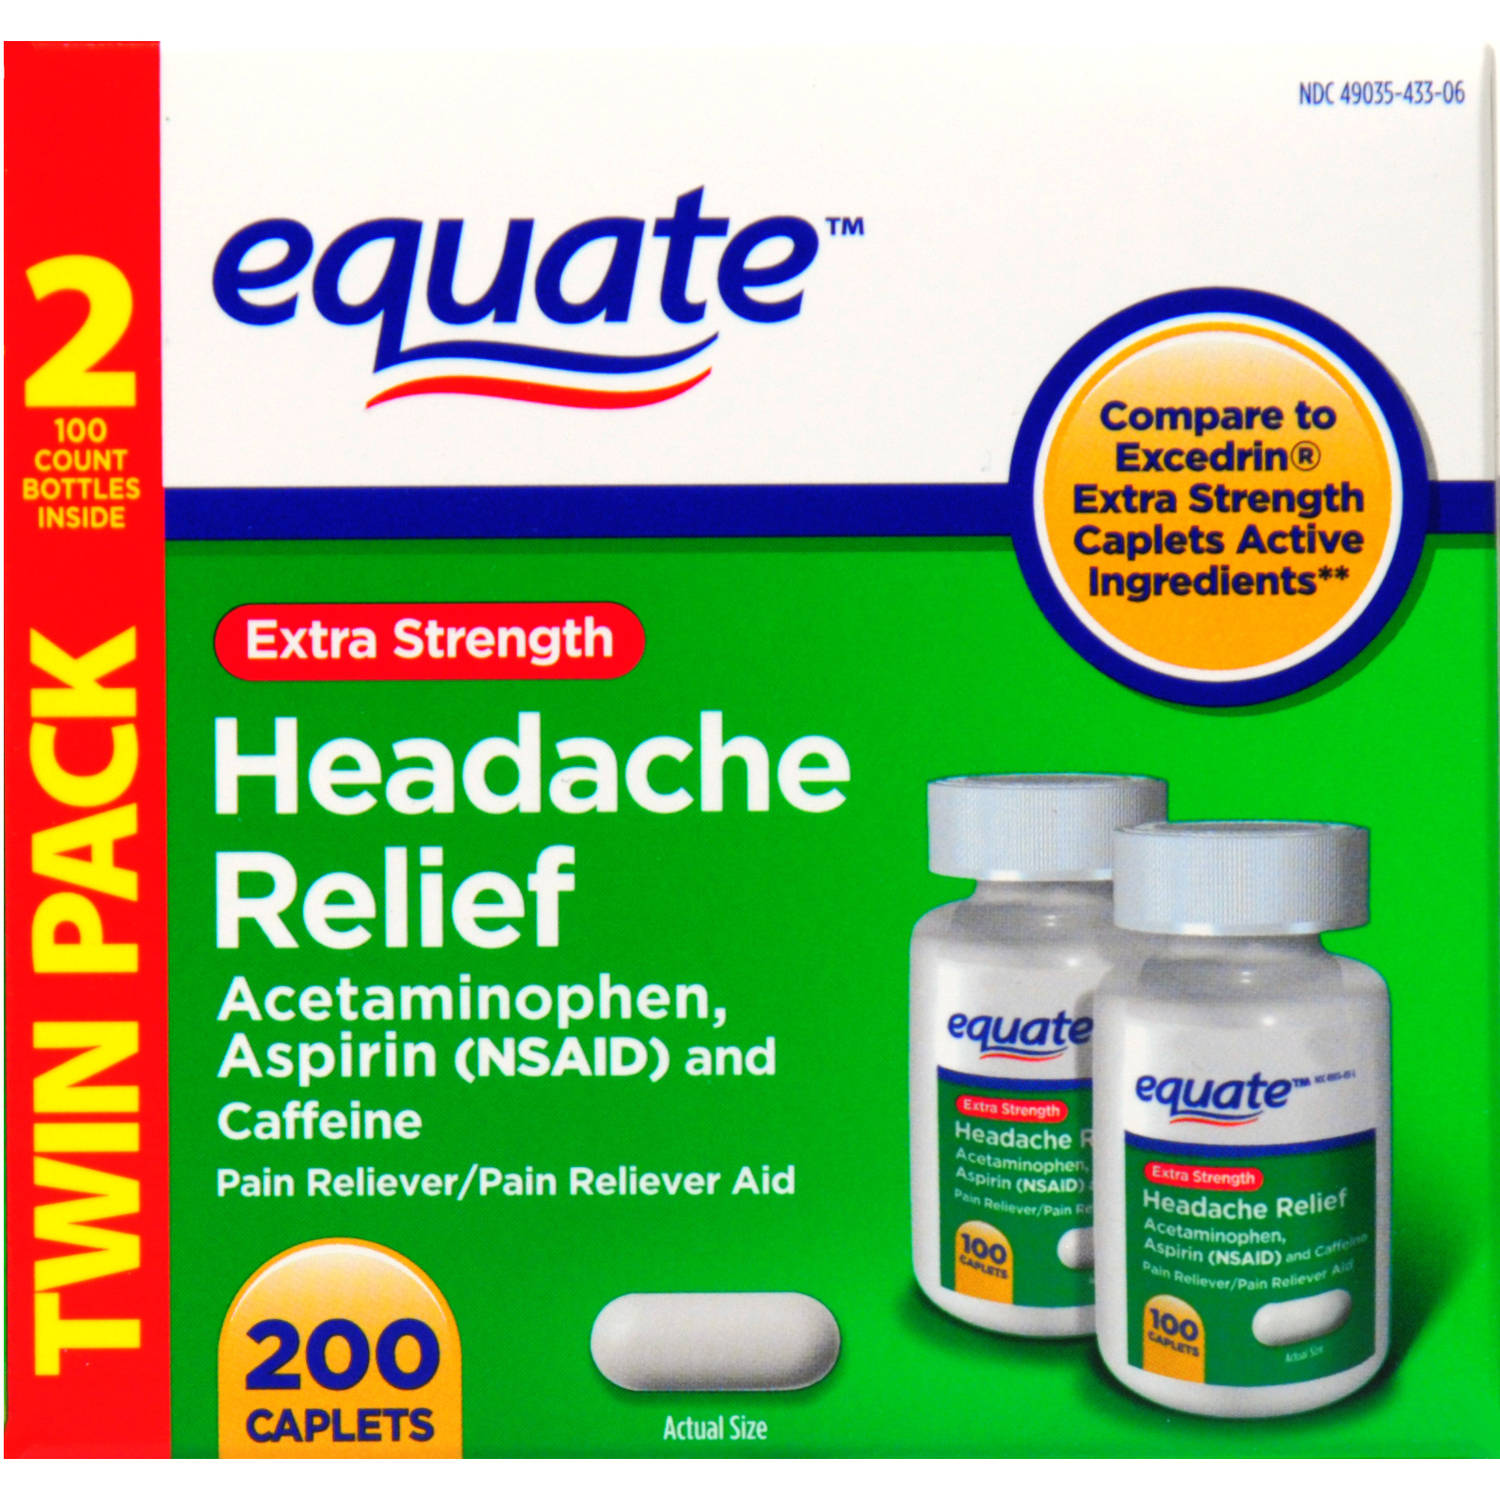 Equate Extra Strength Headache Relief Pain Reliever, 100 count, (Pack of 2)